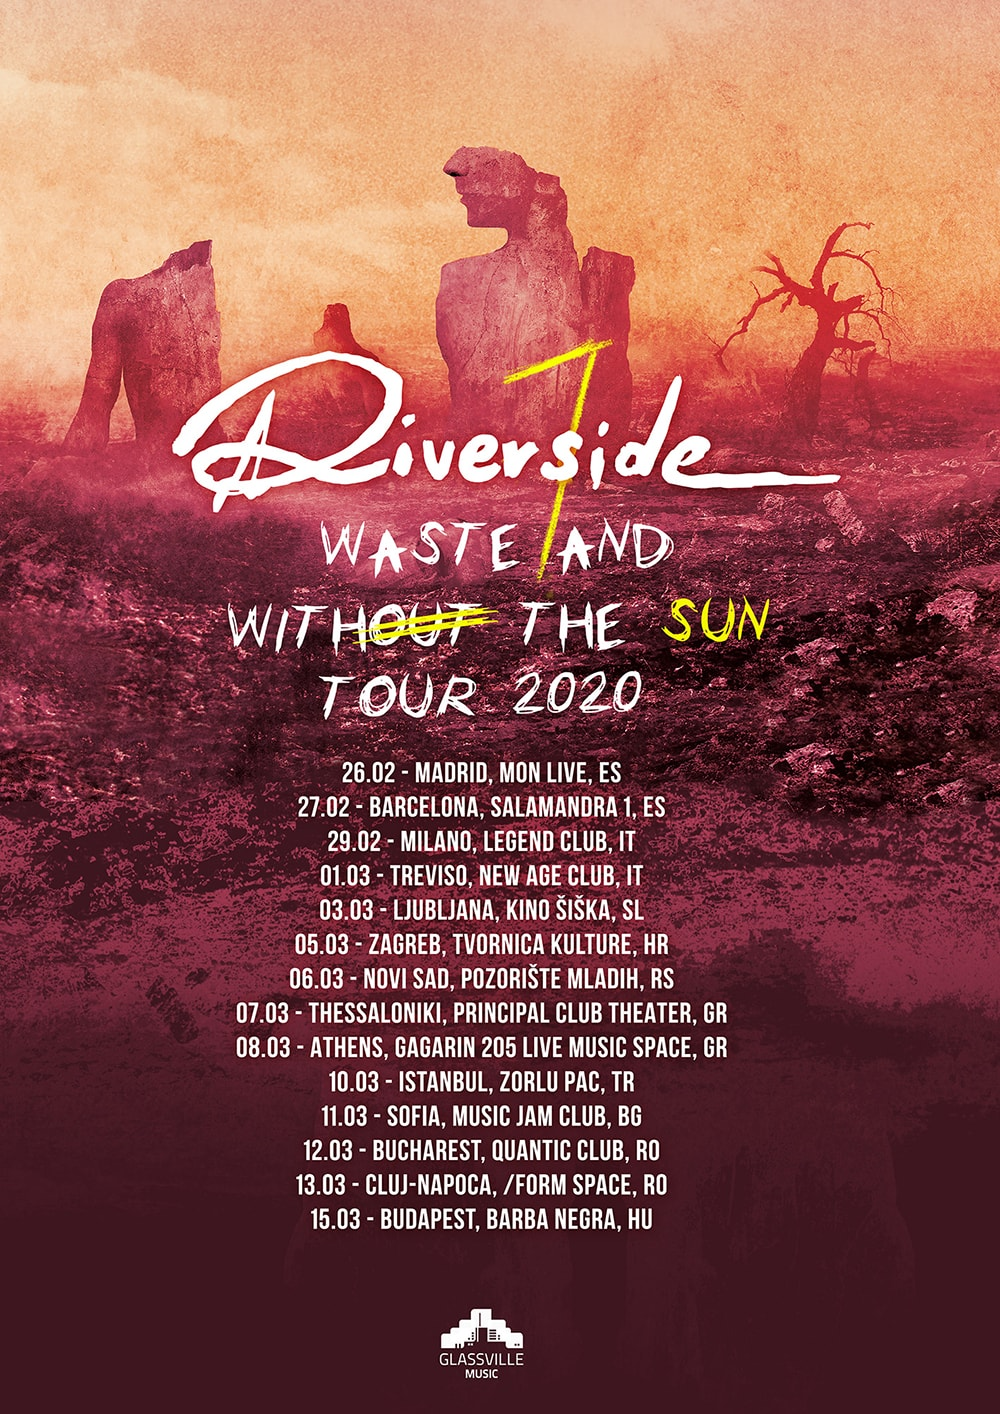 RIVERSIDE - WASTELAND WITH THE SUN TOUR 2020